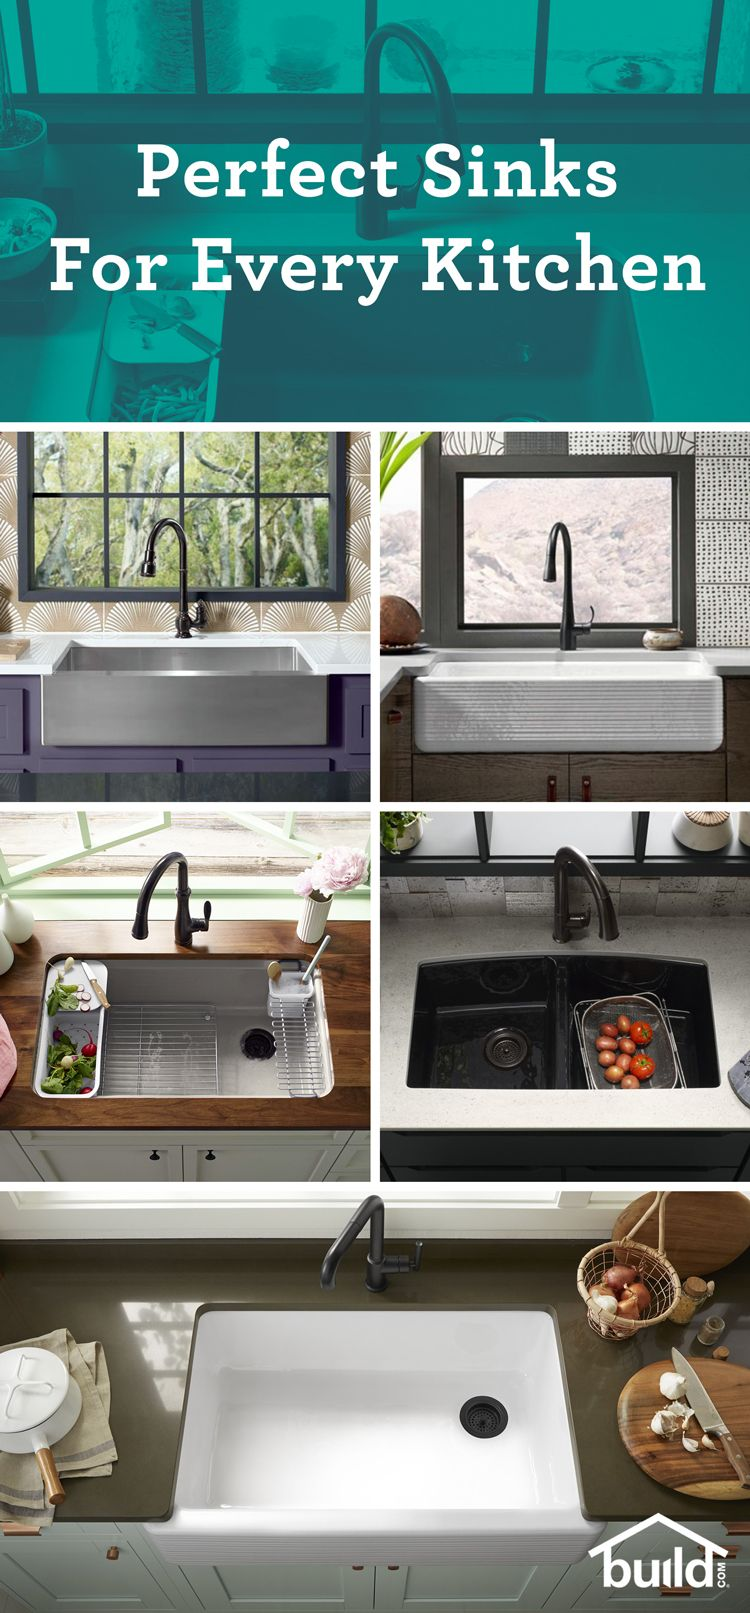 Find A Kitchen Sink At Build Com That Will Make Kitchen Tasks Easier Available In A Variety Of Materials An With Images Interior Design Kitchen Small Home Kitchen Remodel